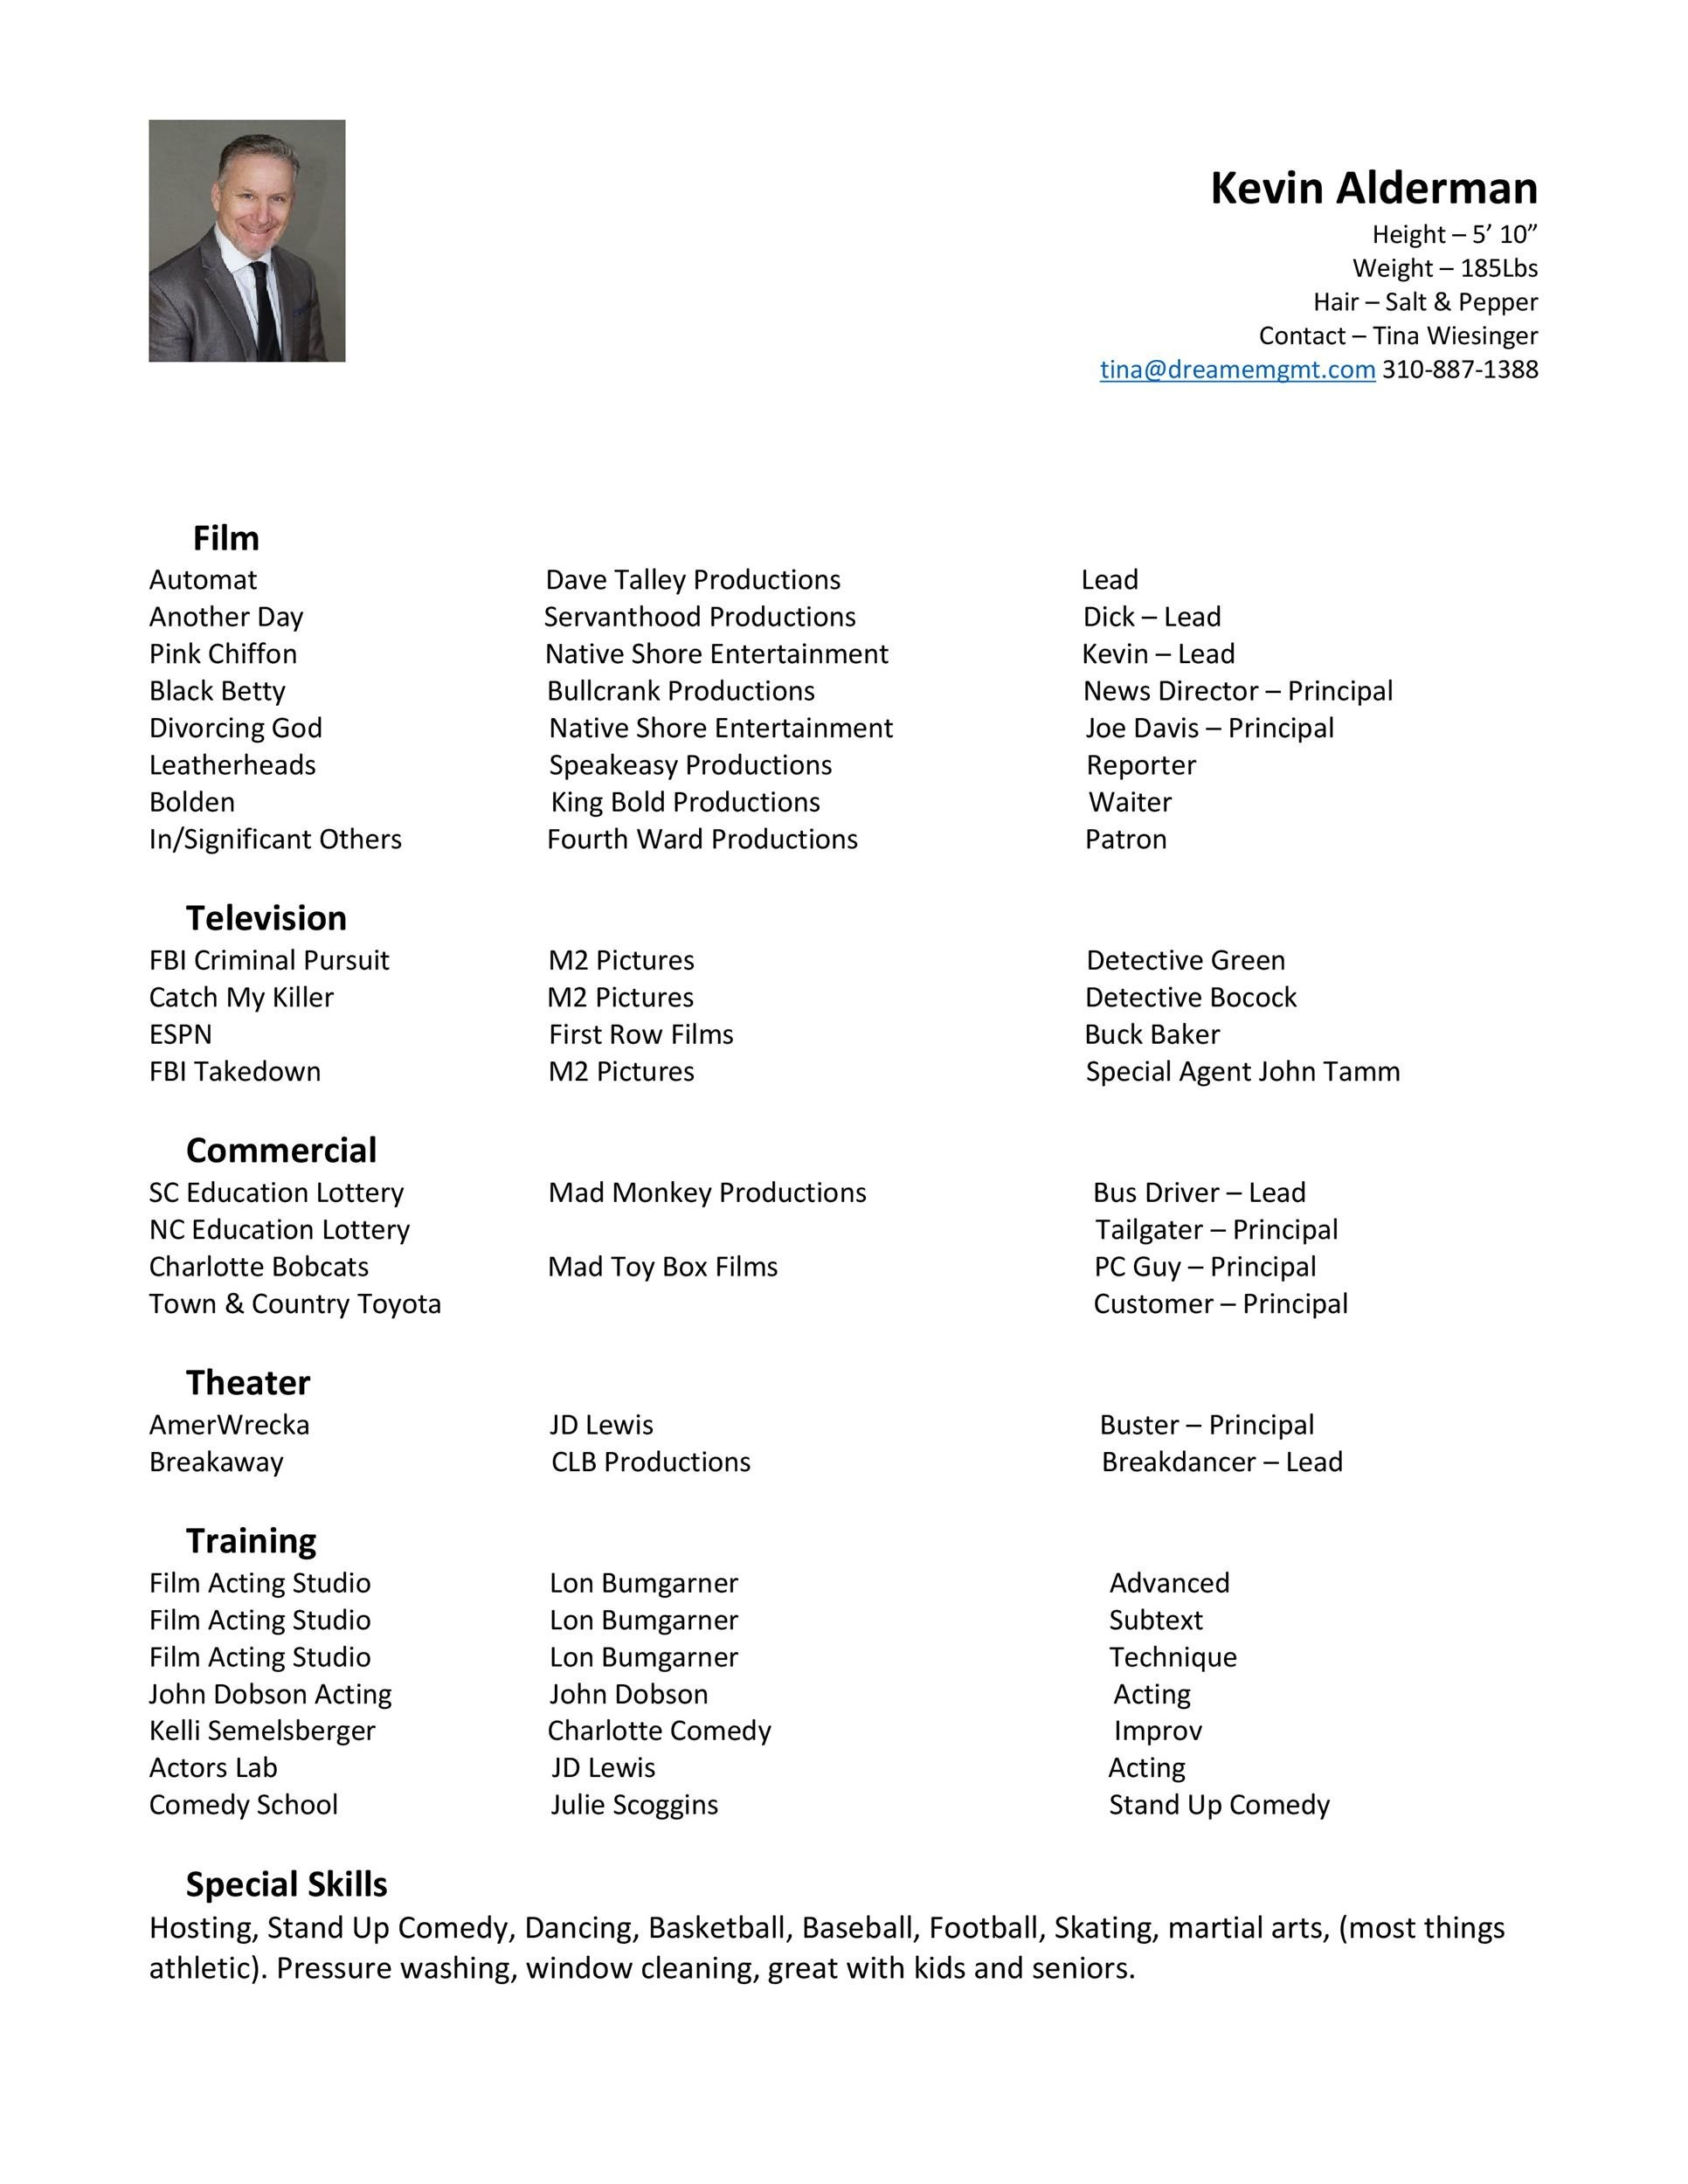 Free acting resume template 32